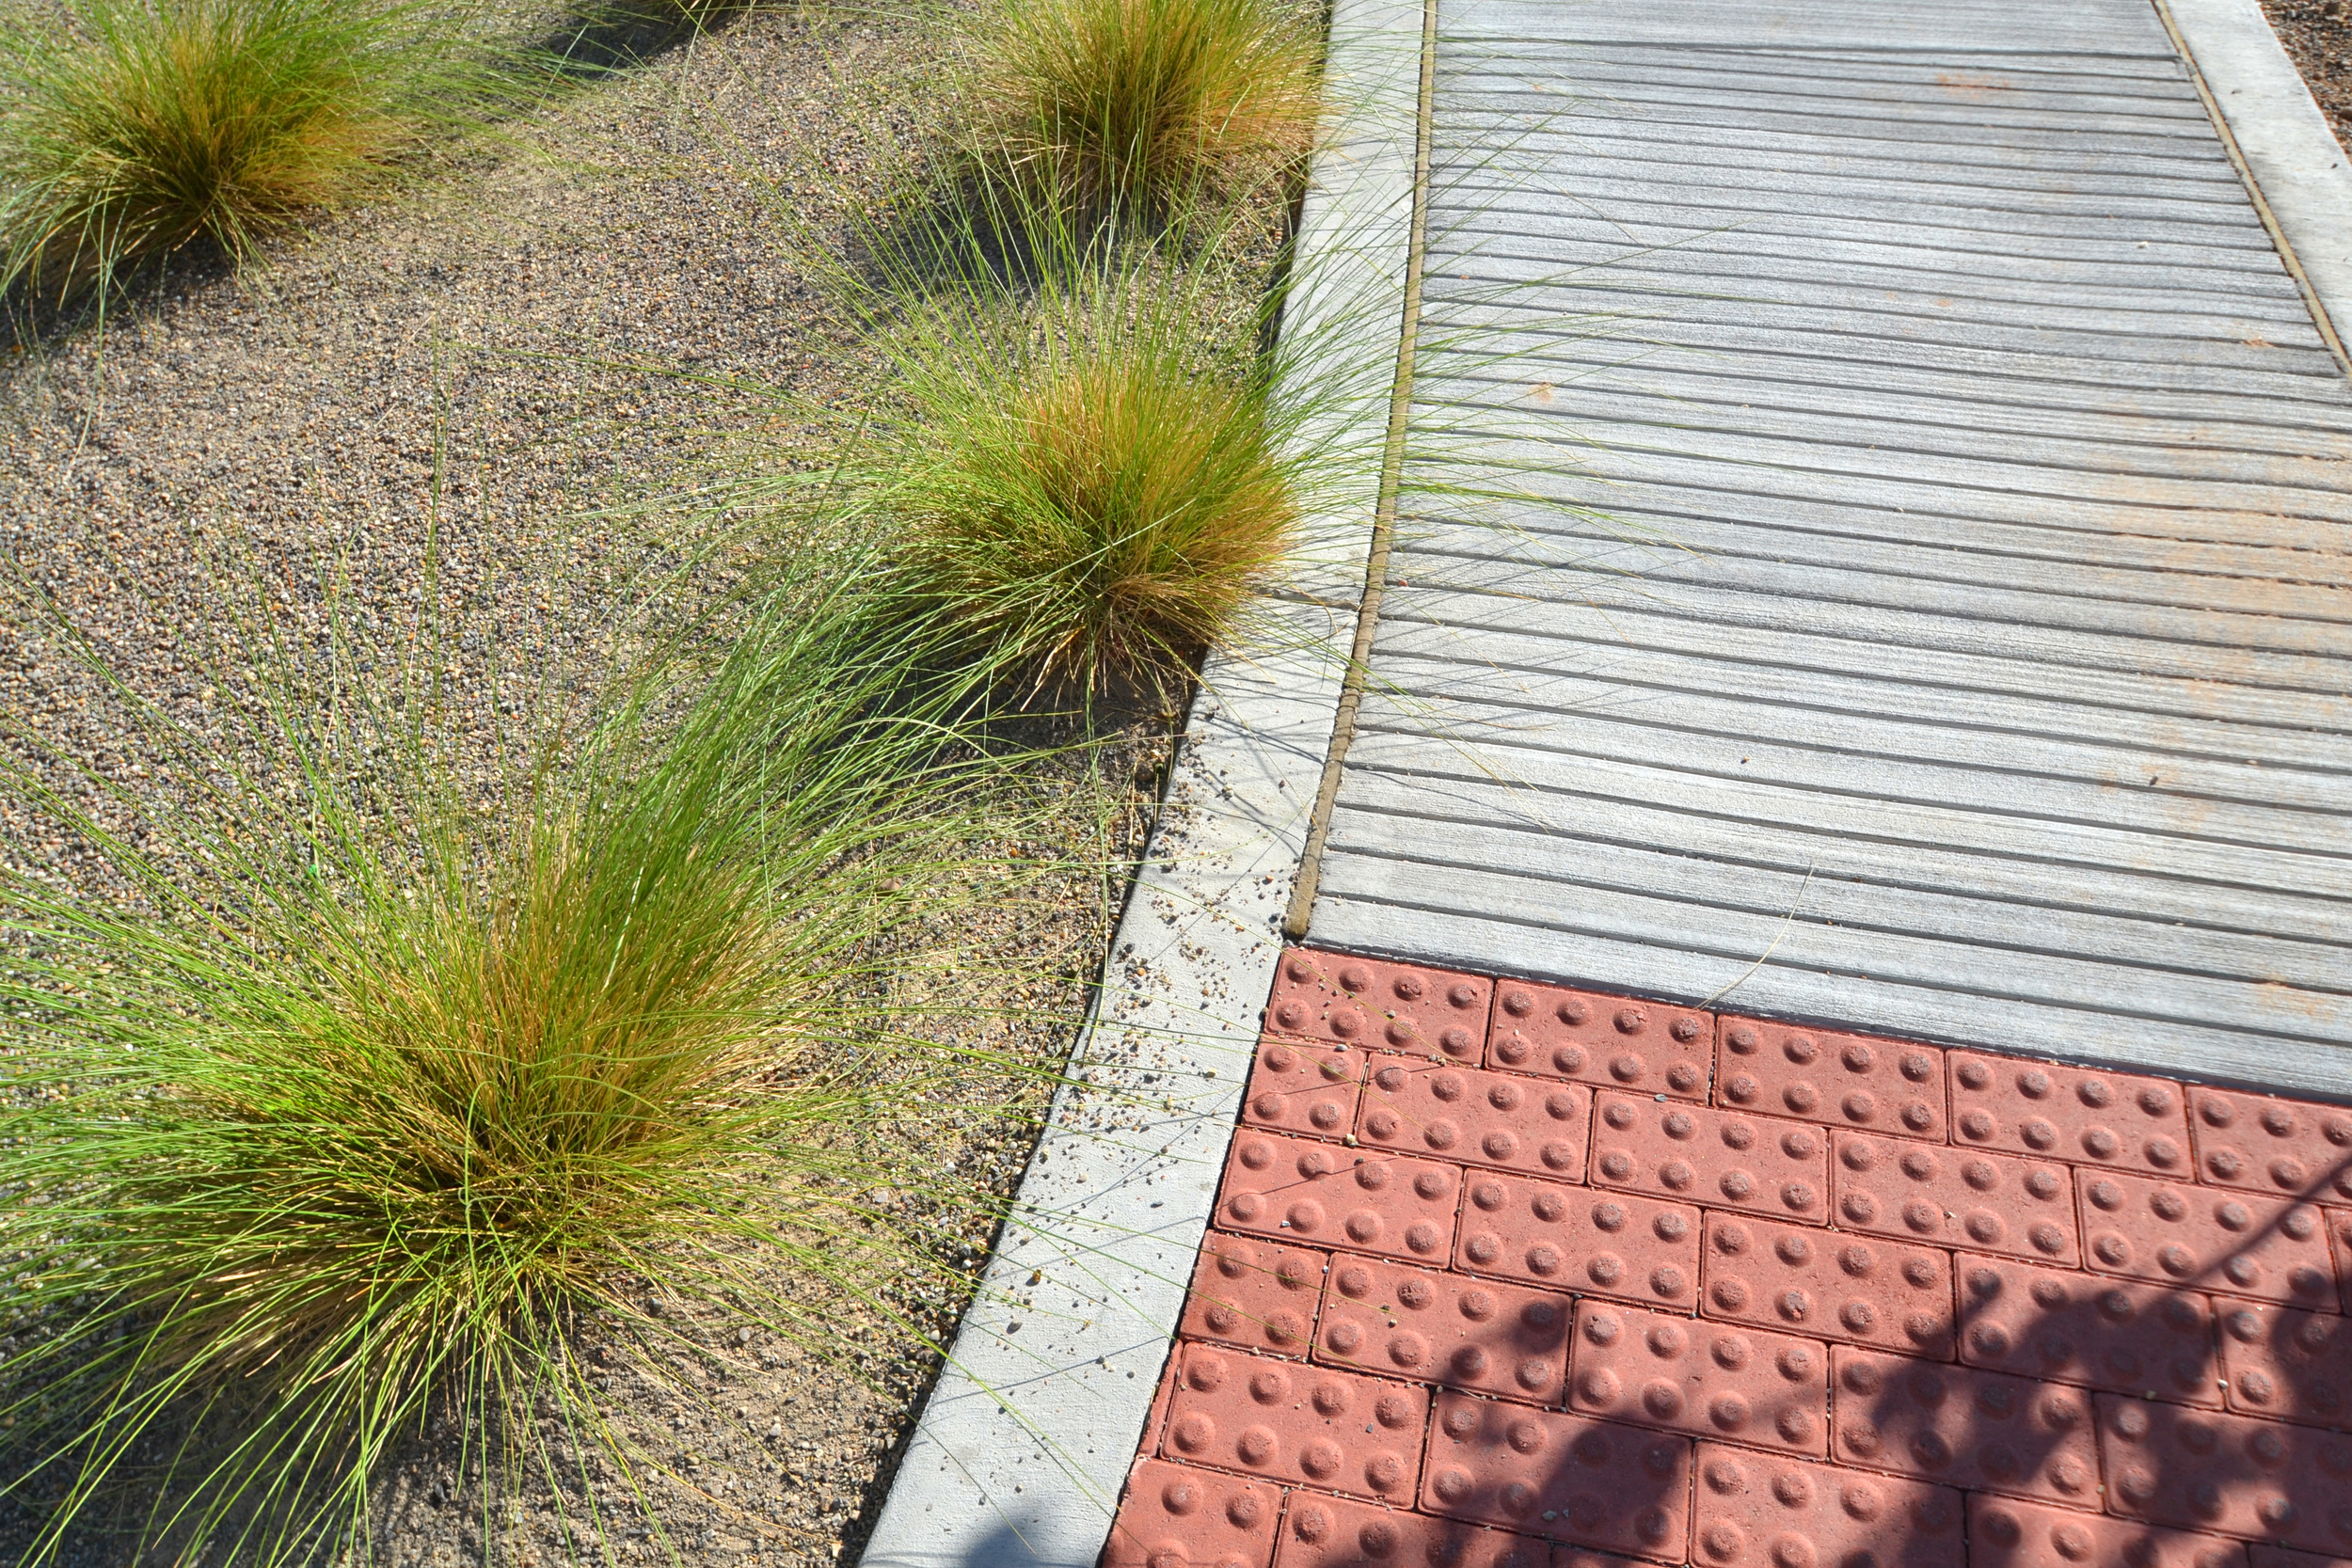 Various textures and colors on the rehabilitation walkway challenge clients to improve walking abilities